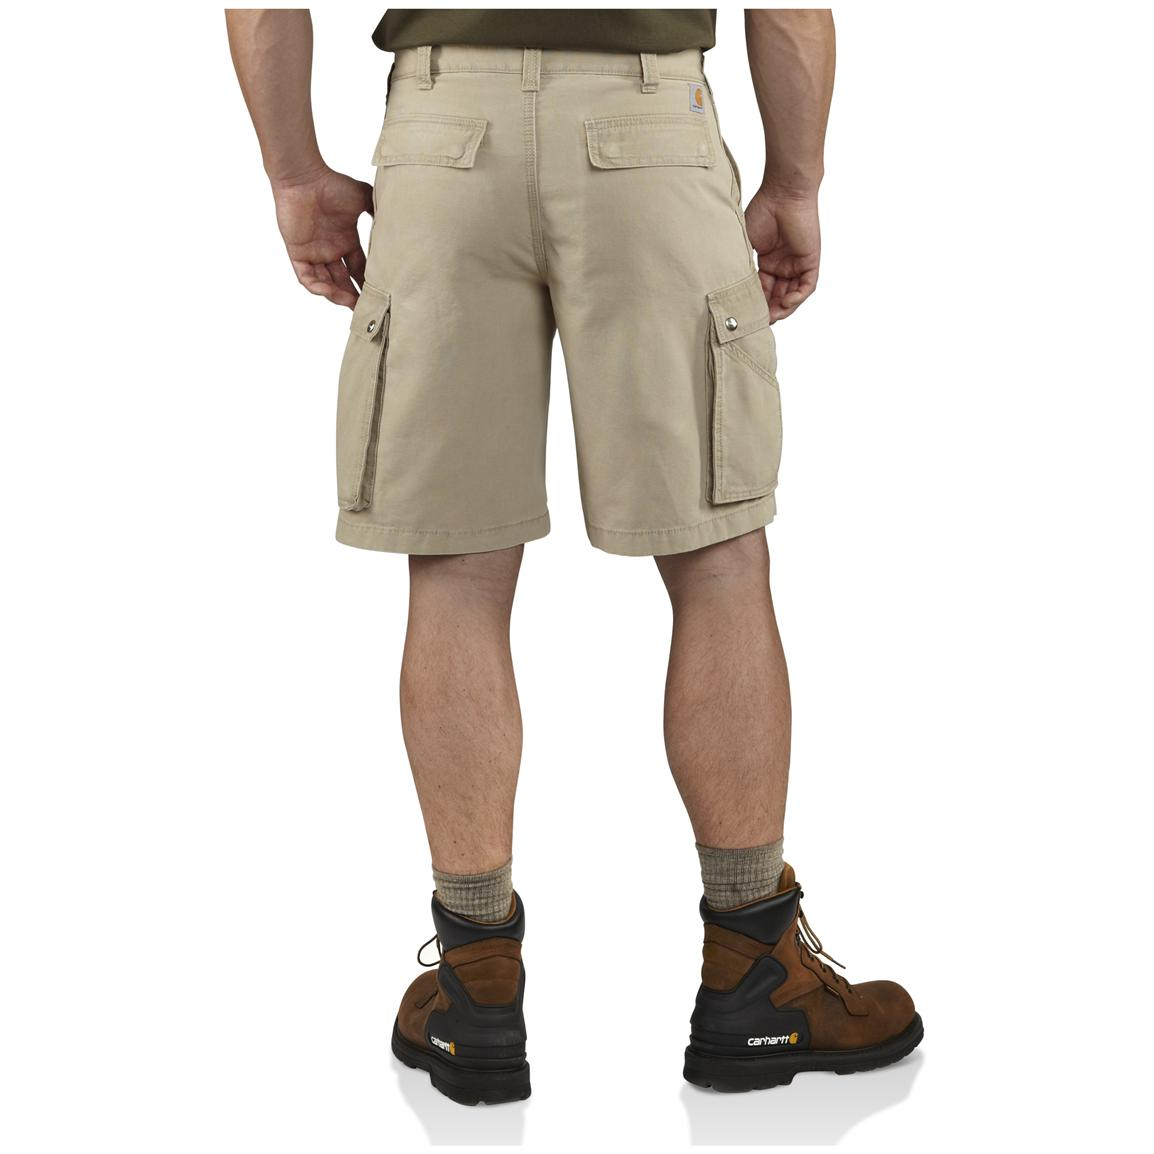 Carhartt® Rugged Cargo Shorts, Tan - Back